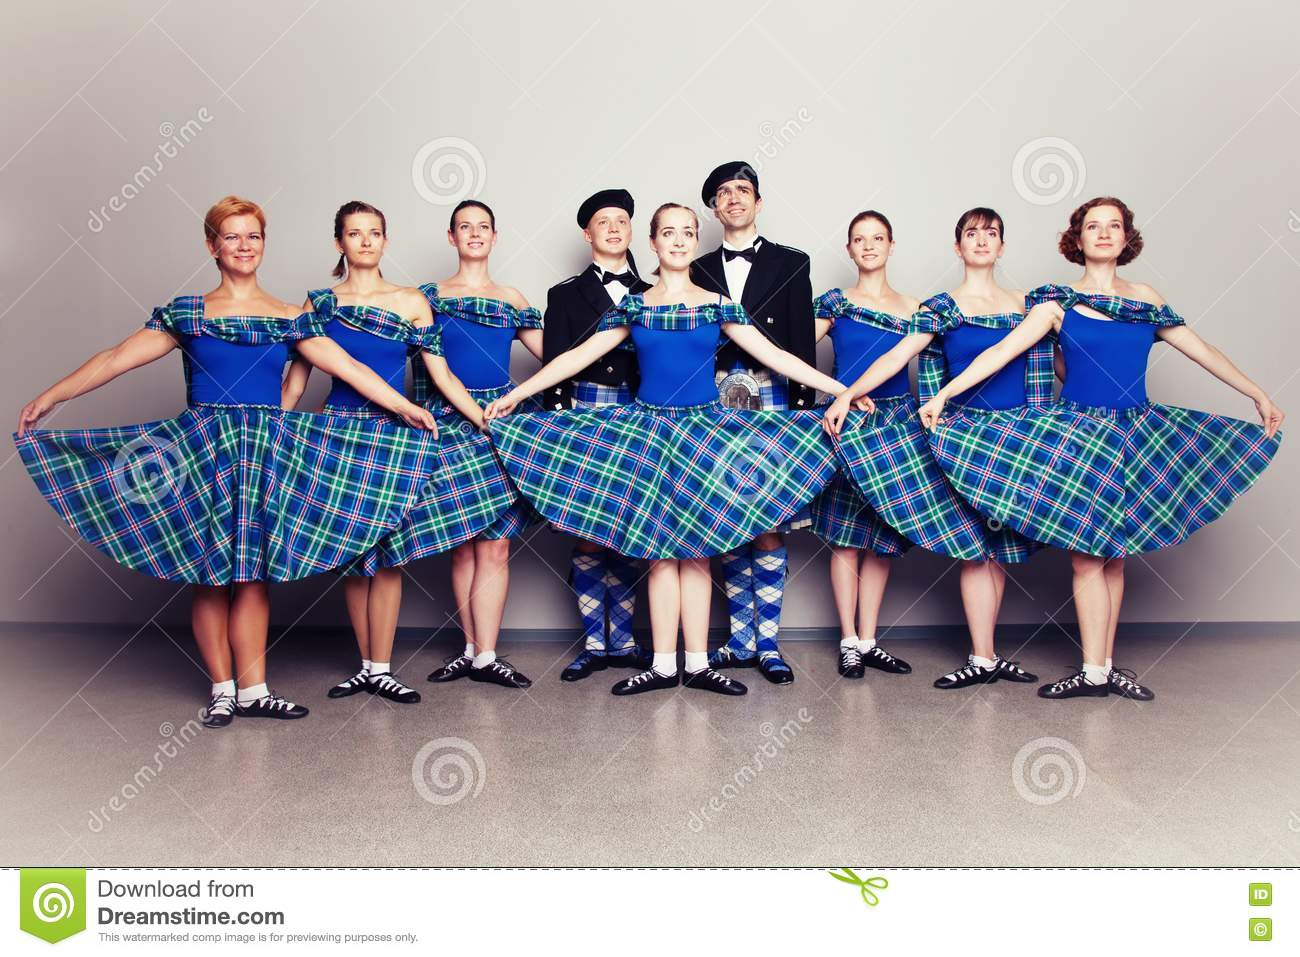 Dancers In Kilts Royalty Free Stock Photo - Image: 15985485